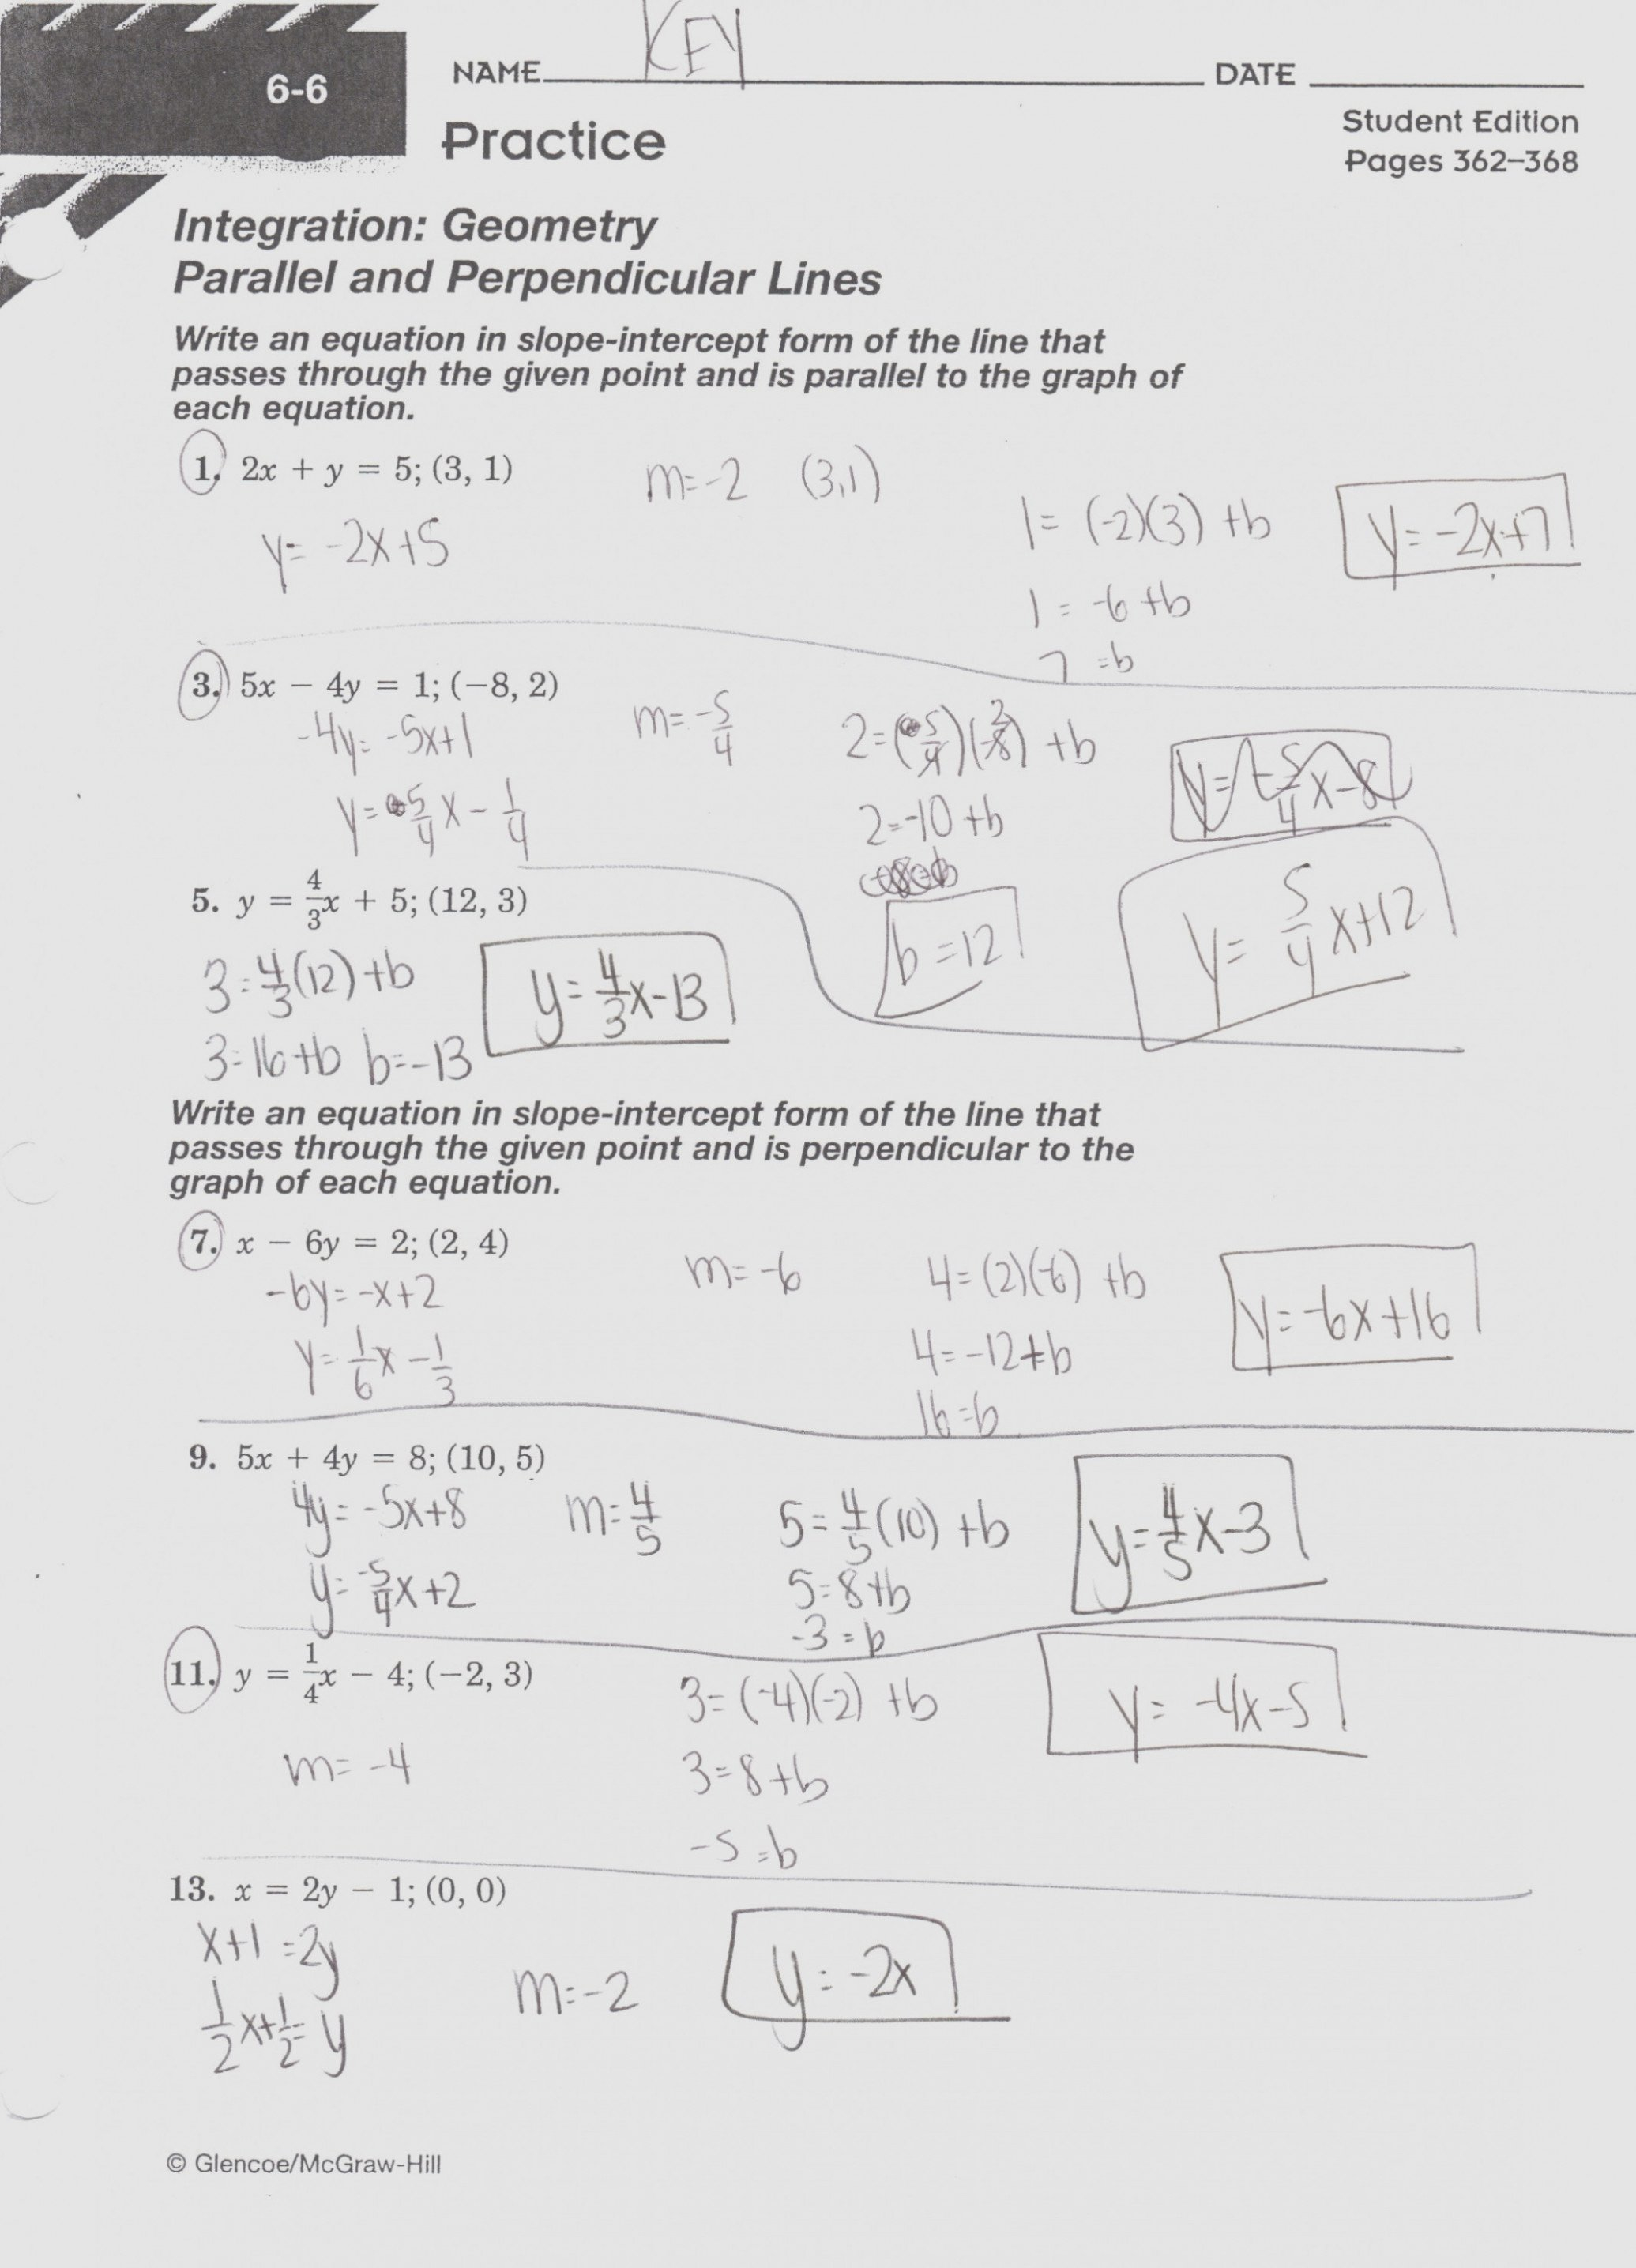 Writing Linear Equations Worksheet Answers